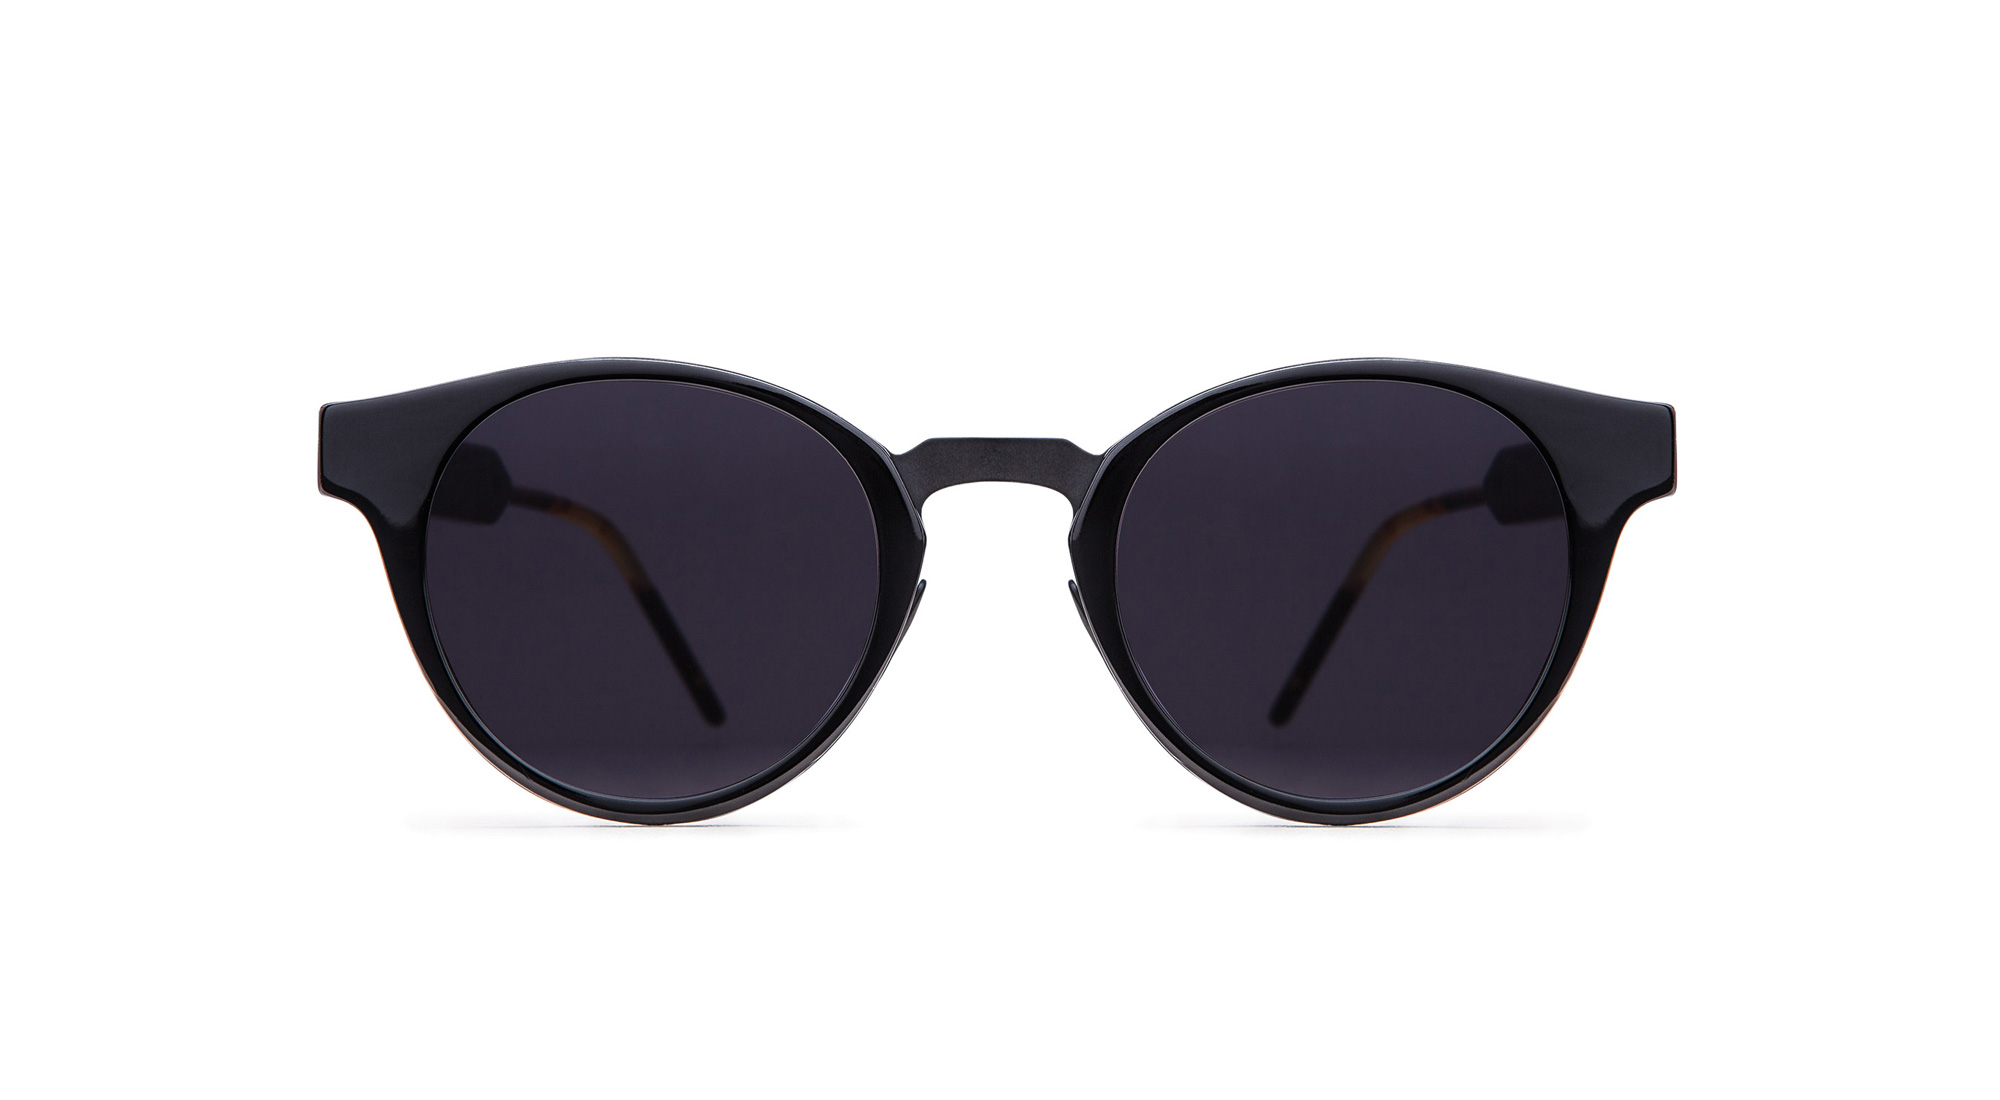 WILLIAMS_Eyewear_SOYA_Black_FrontalView